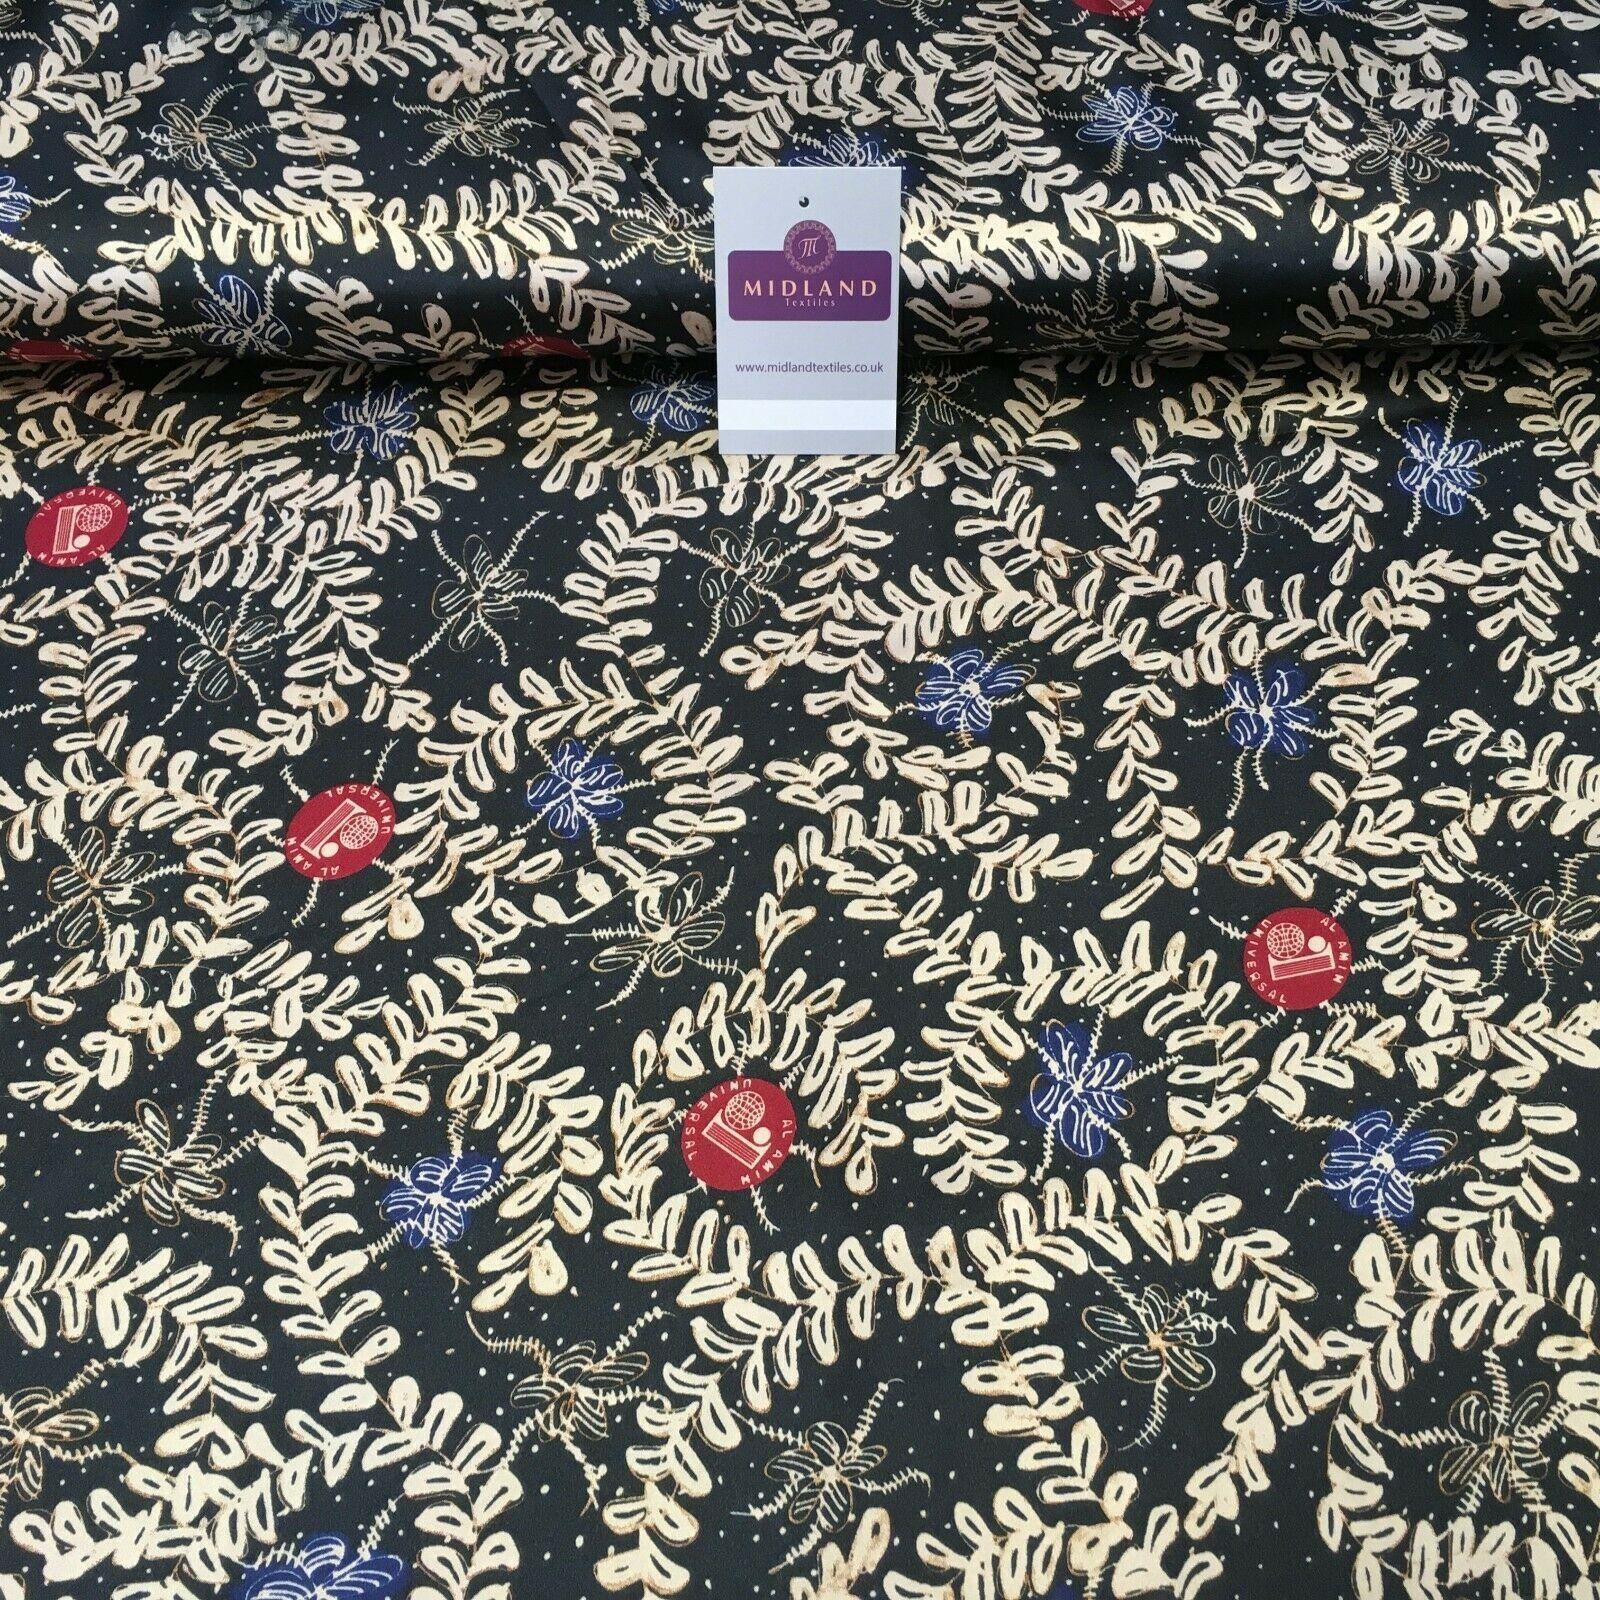 Black and Gold Floral Printed Satin Dress fabric 150cm Wide M1115 Mtex